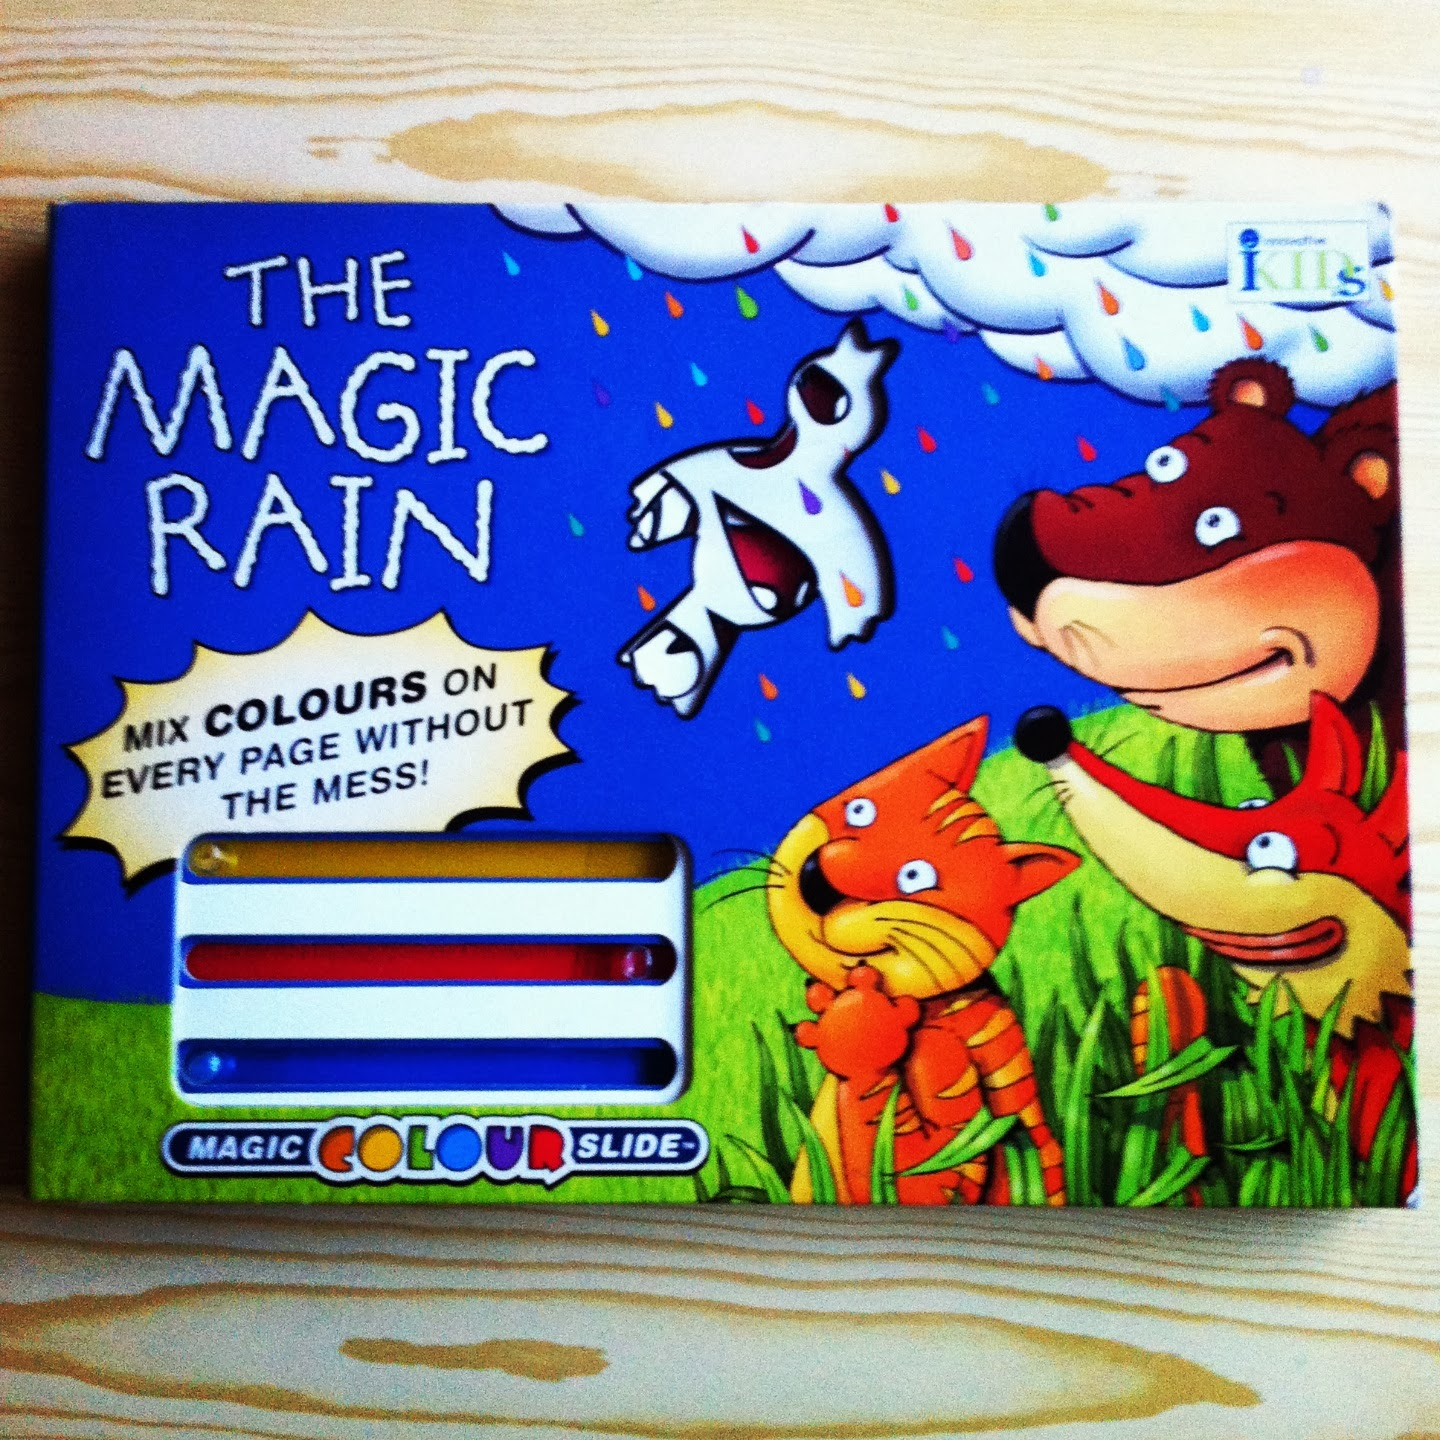 the magic rain - a book